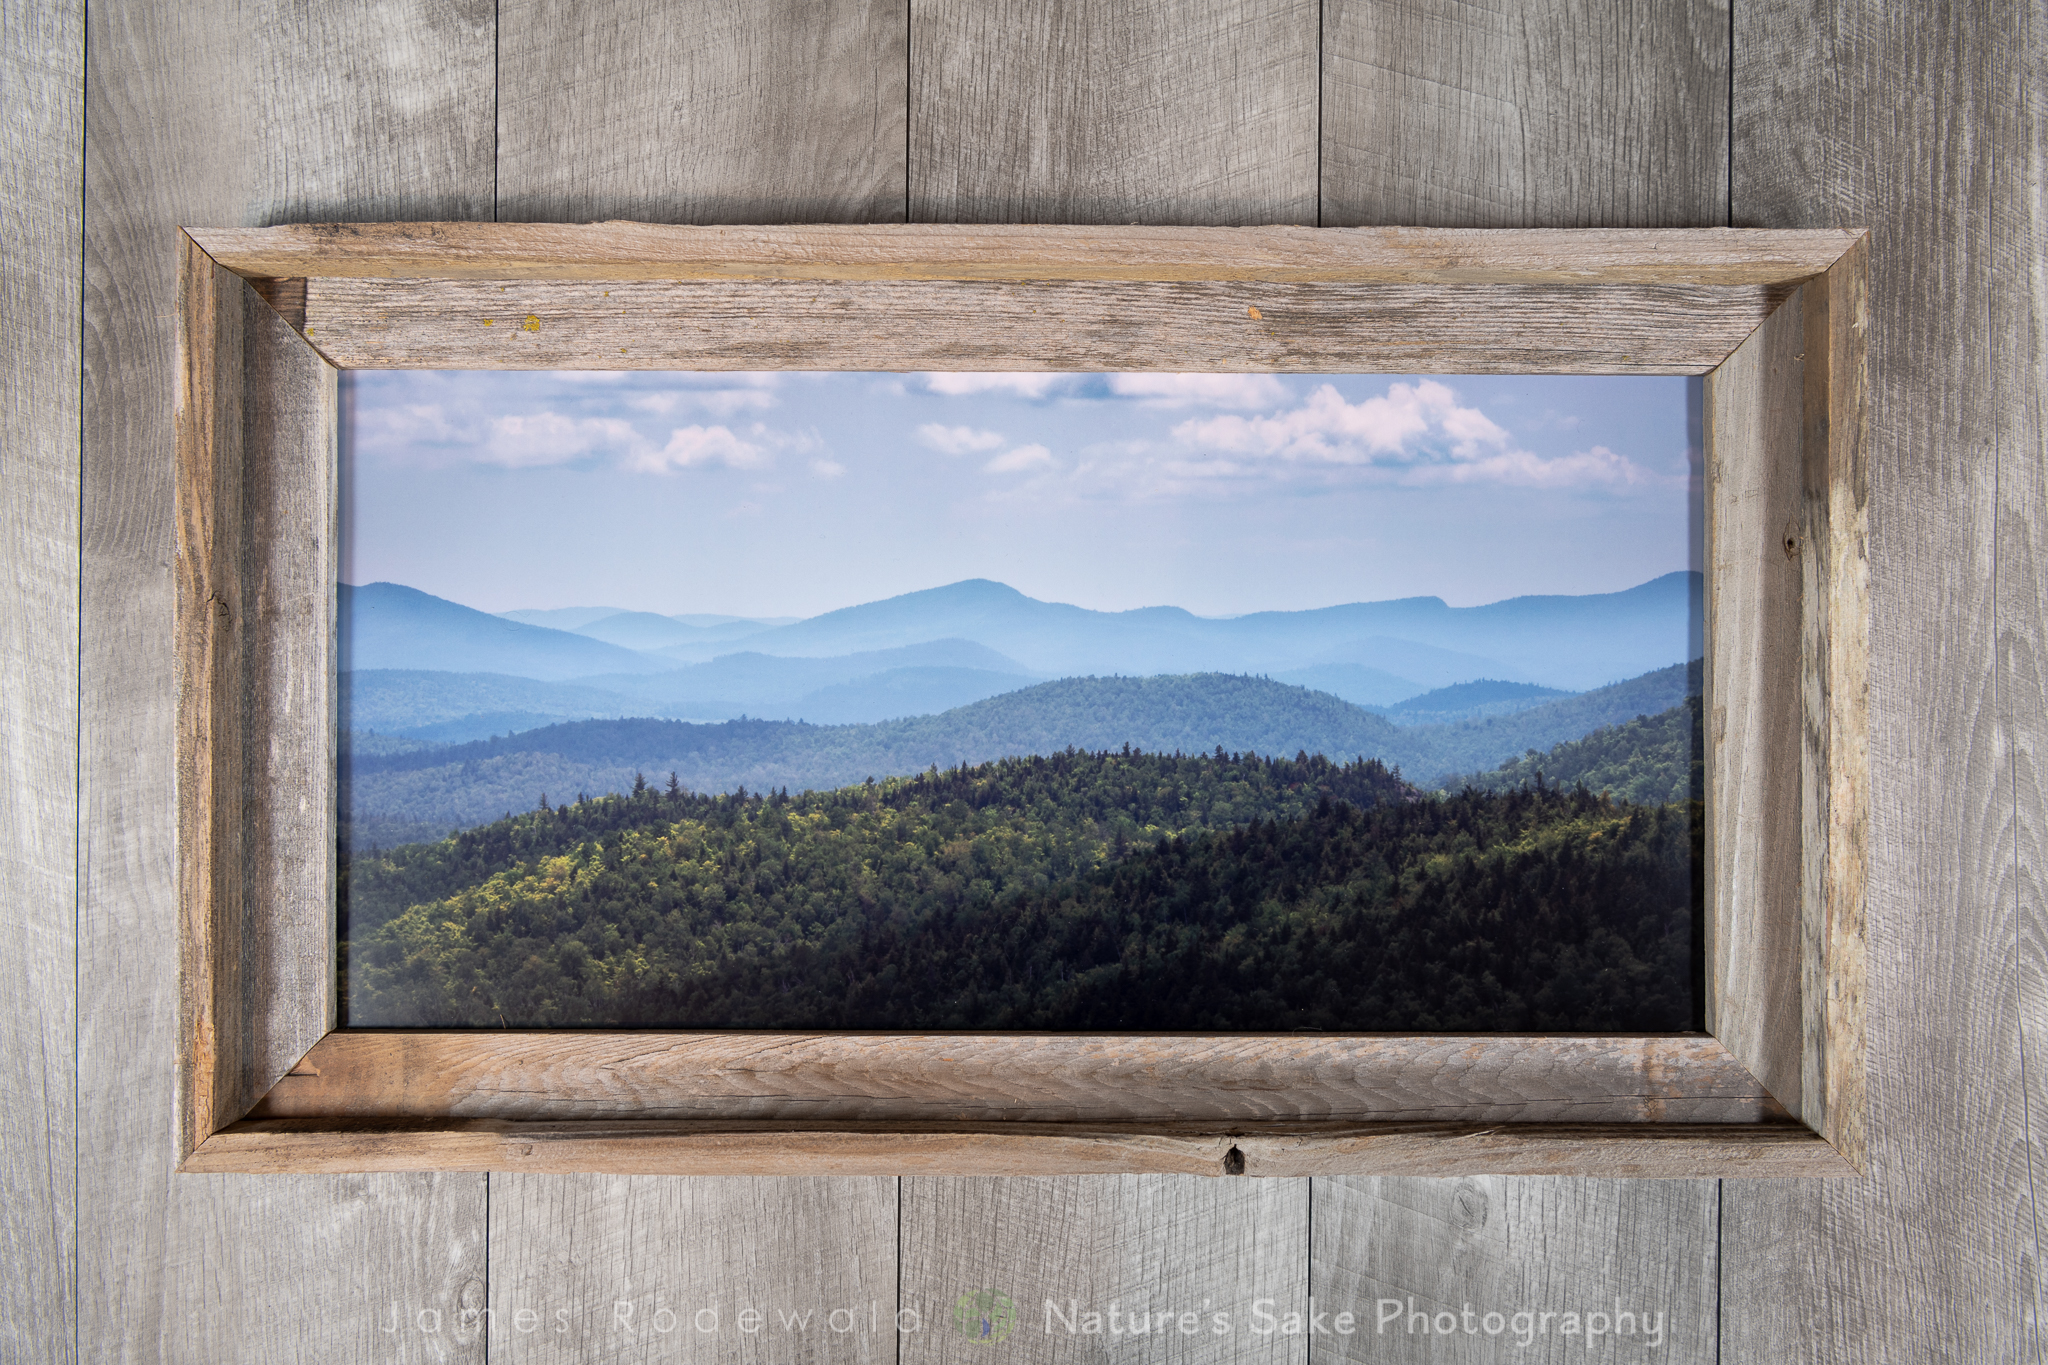 """Adirondack Skies""."" to benefit the Adirondack Council"